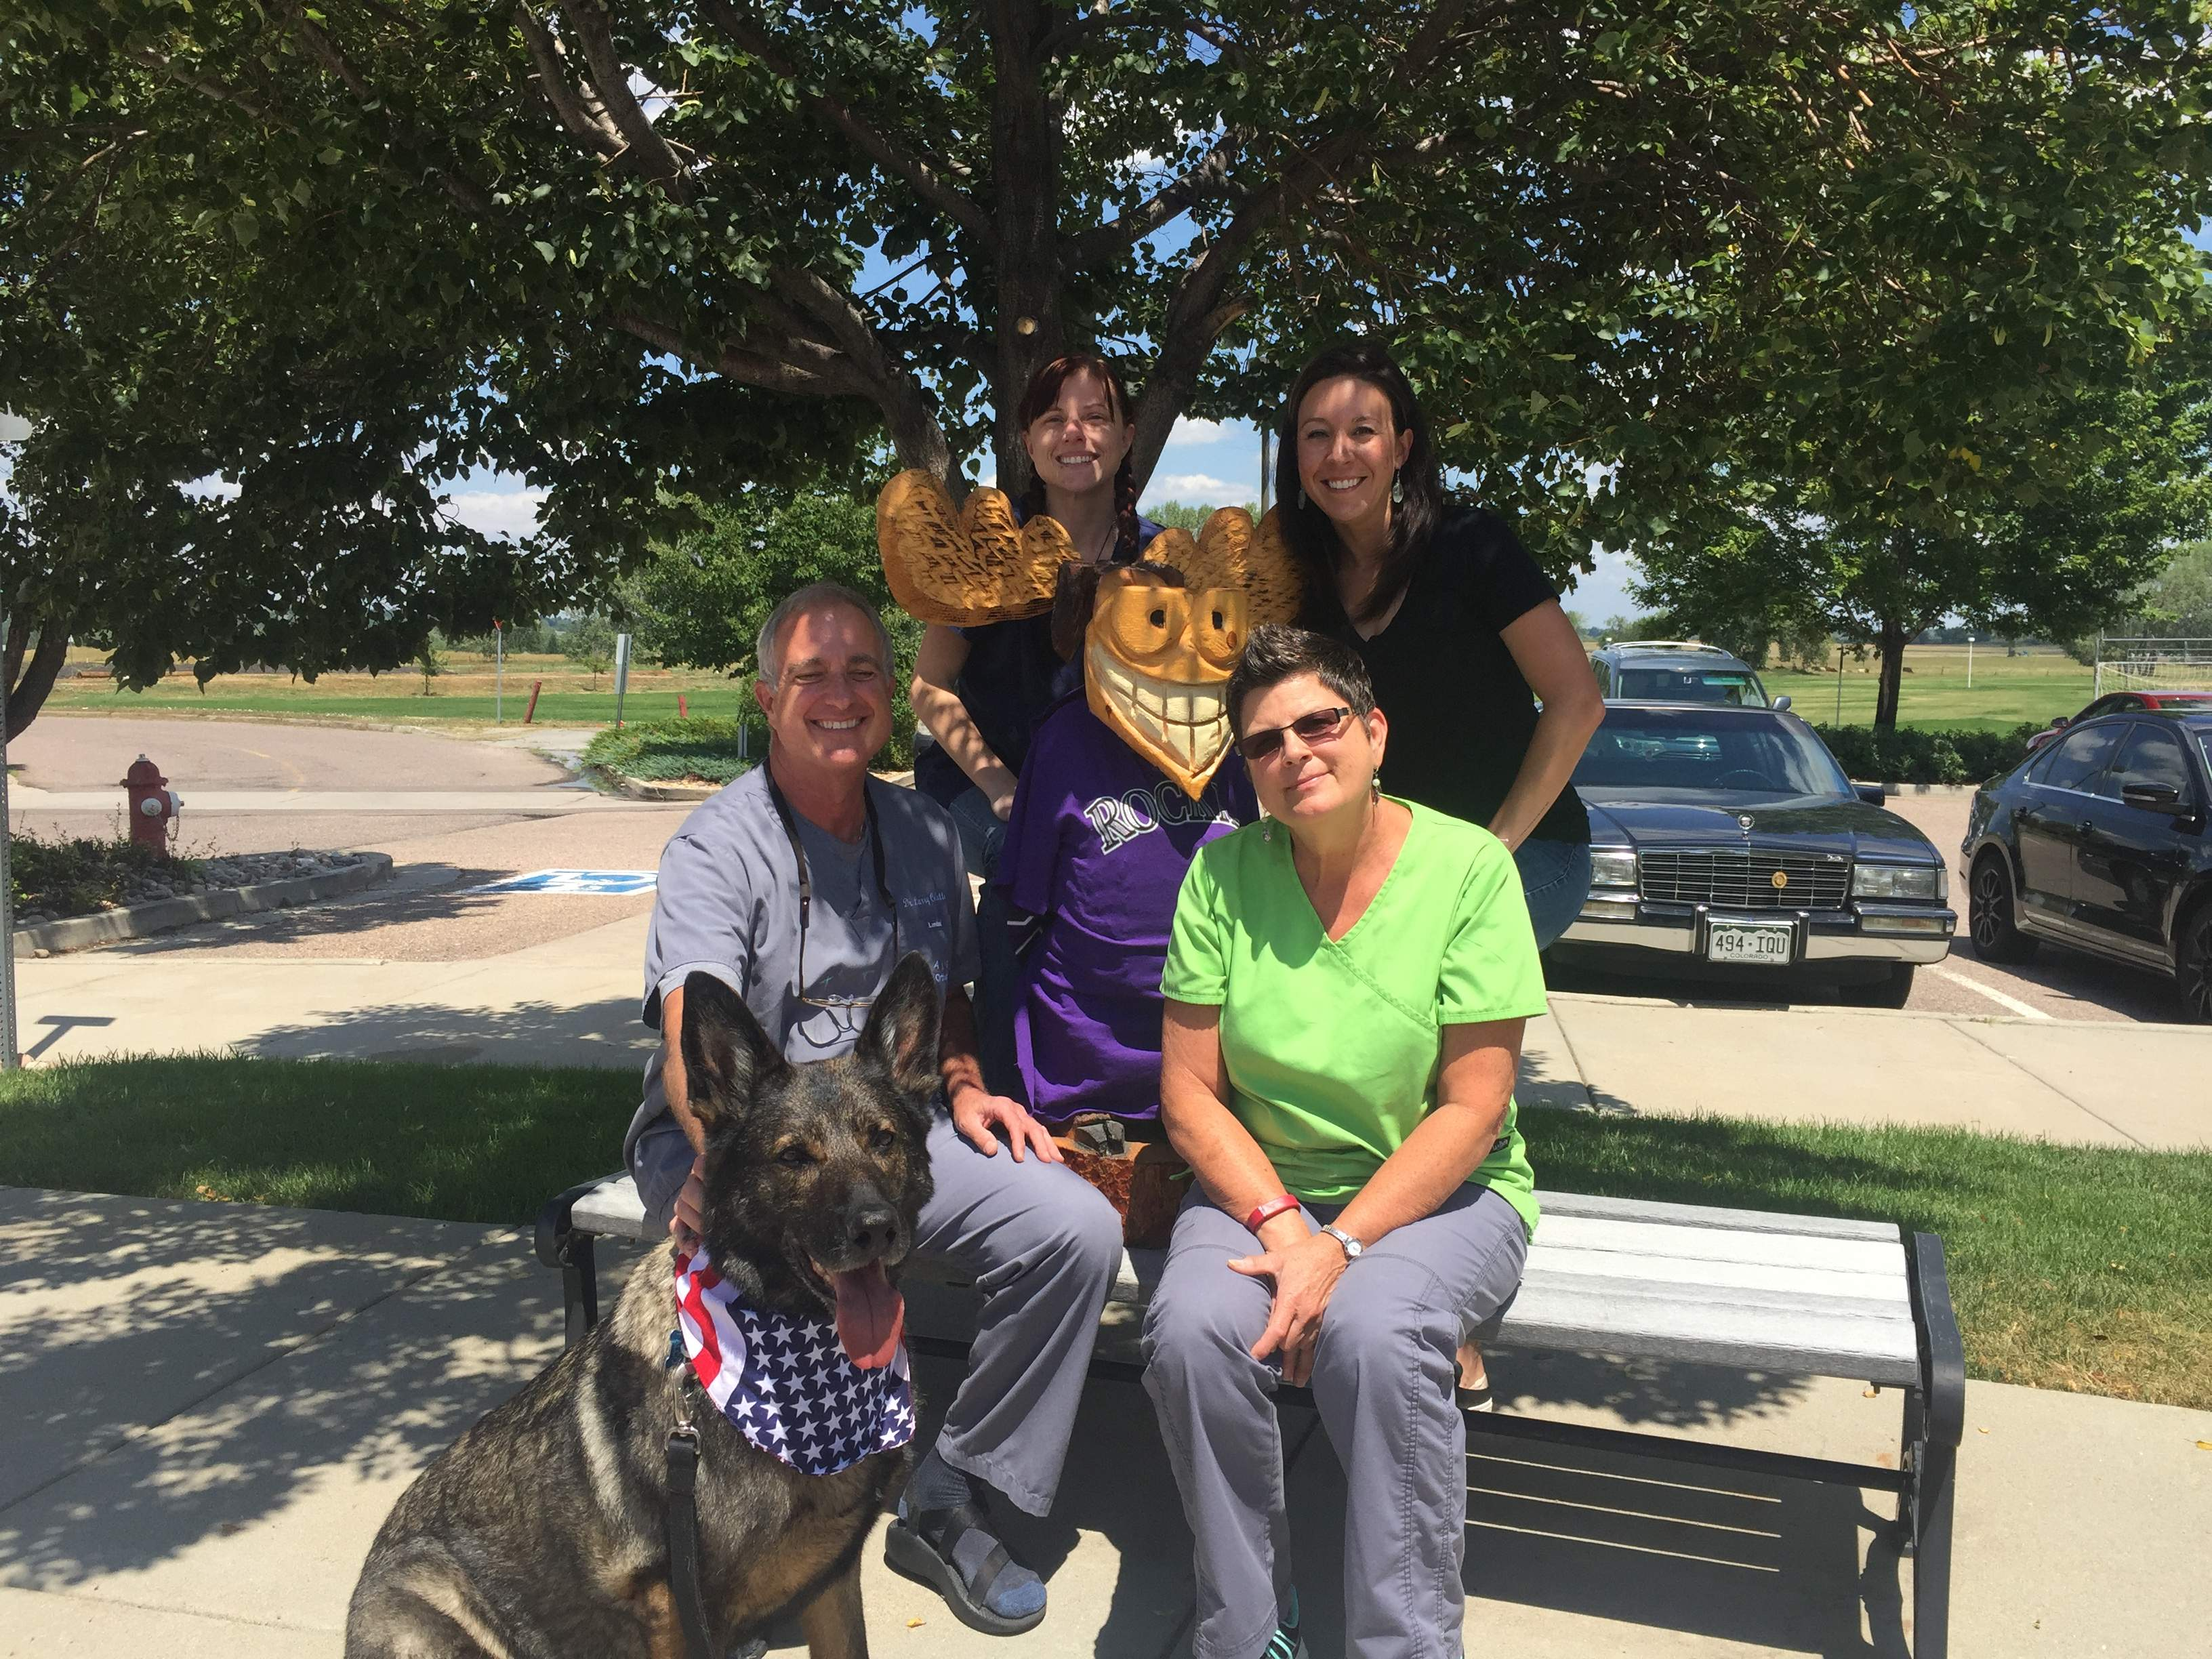 This photo shows the Align Orthodontics staff, including Dr. Colletti, along with wooden moose mascot Justin Timbertooth and guest RMWD Falco.